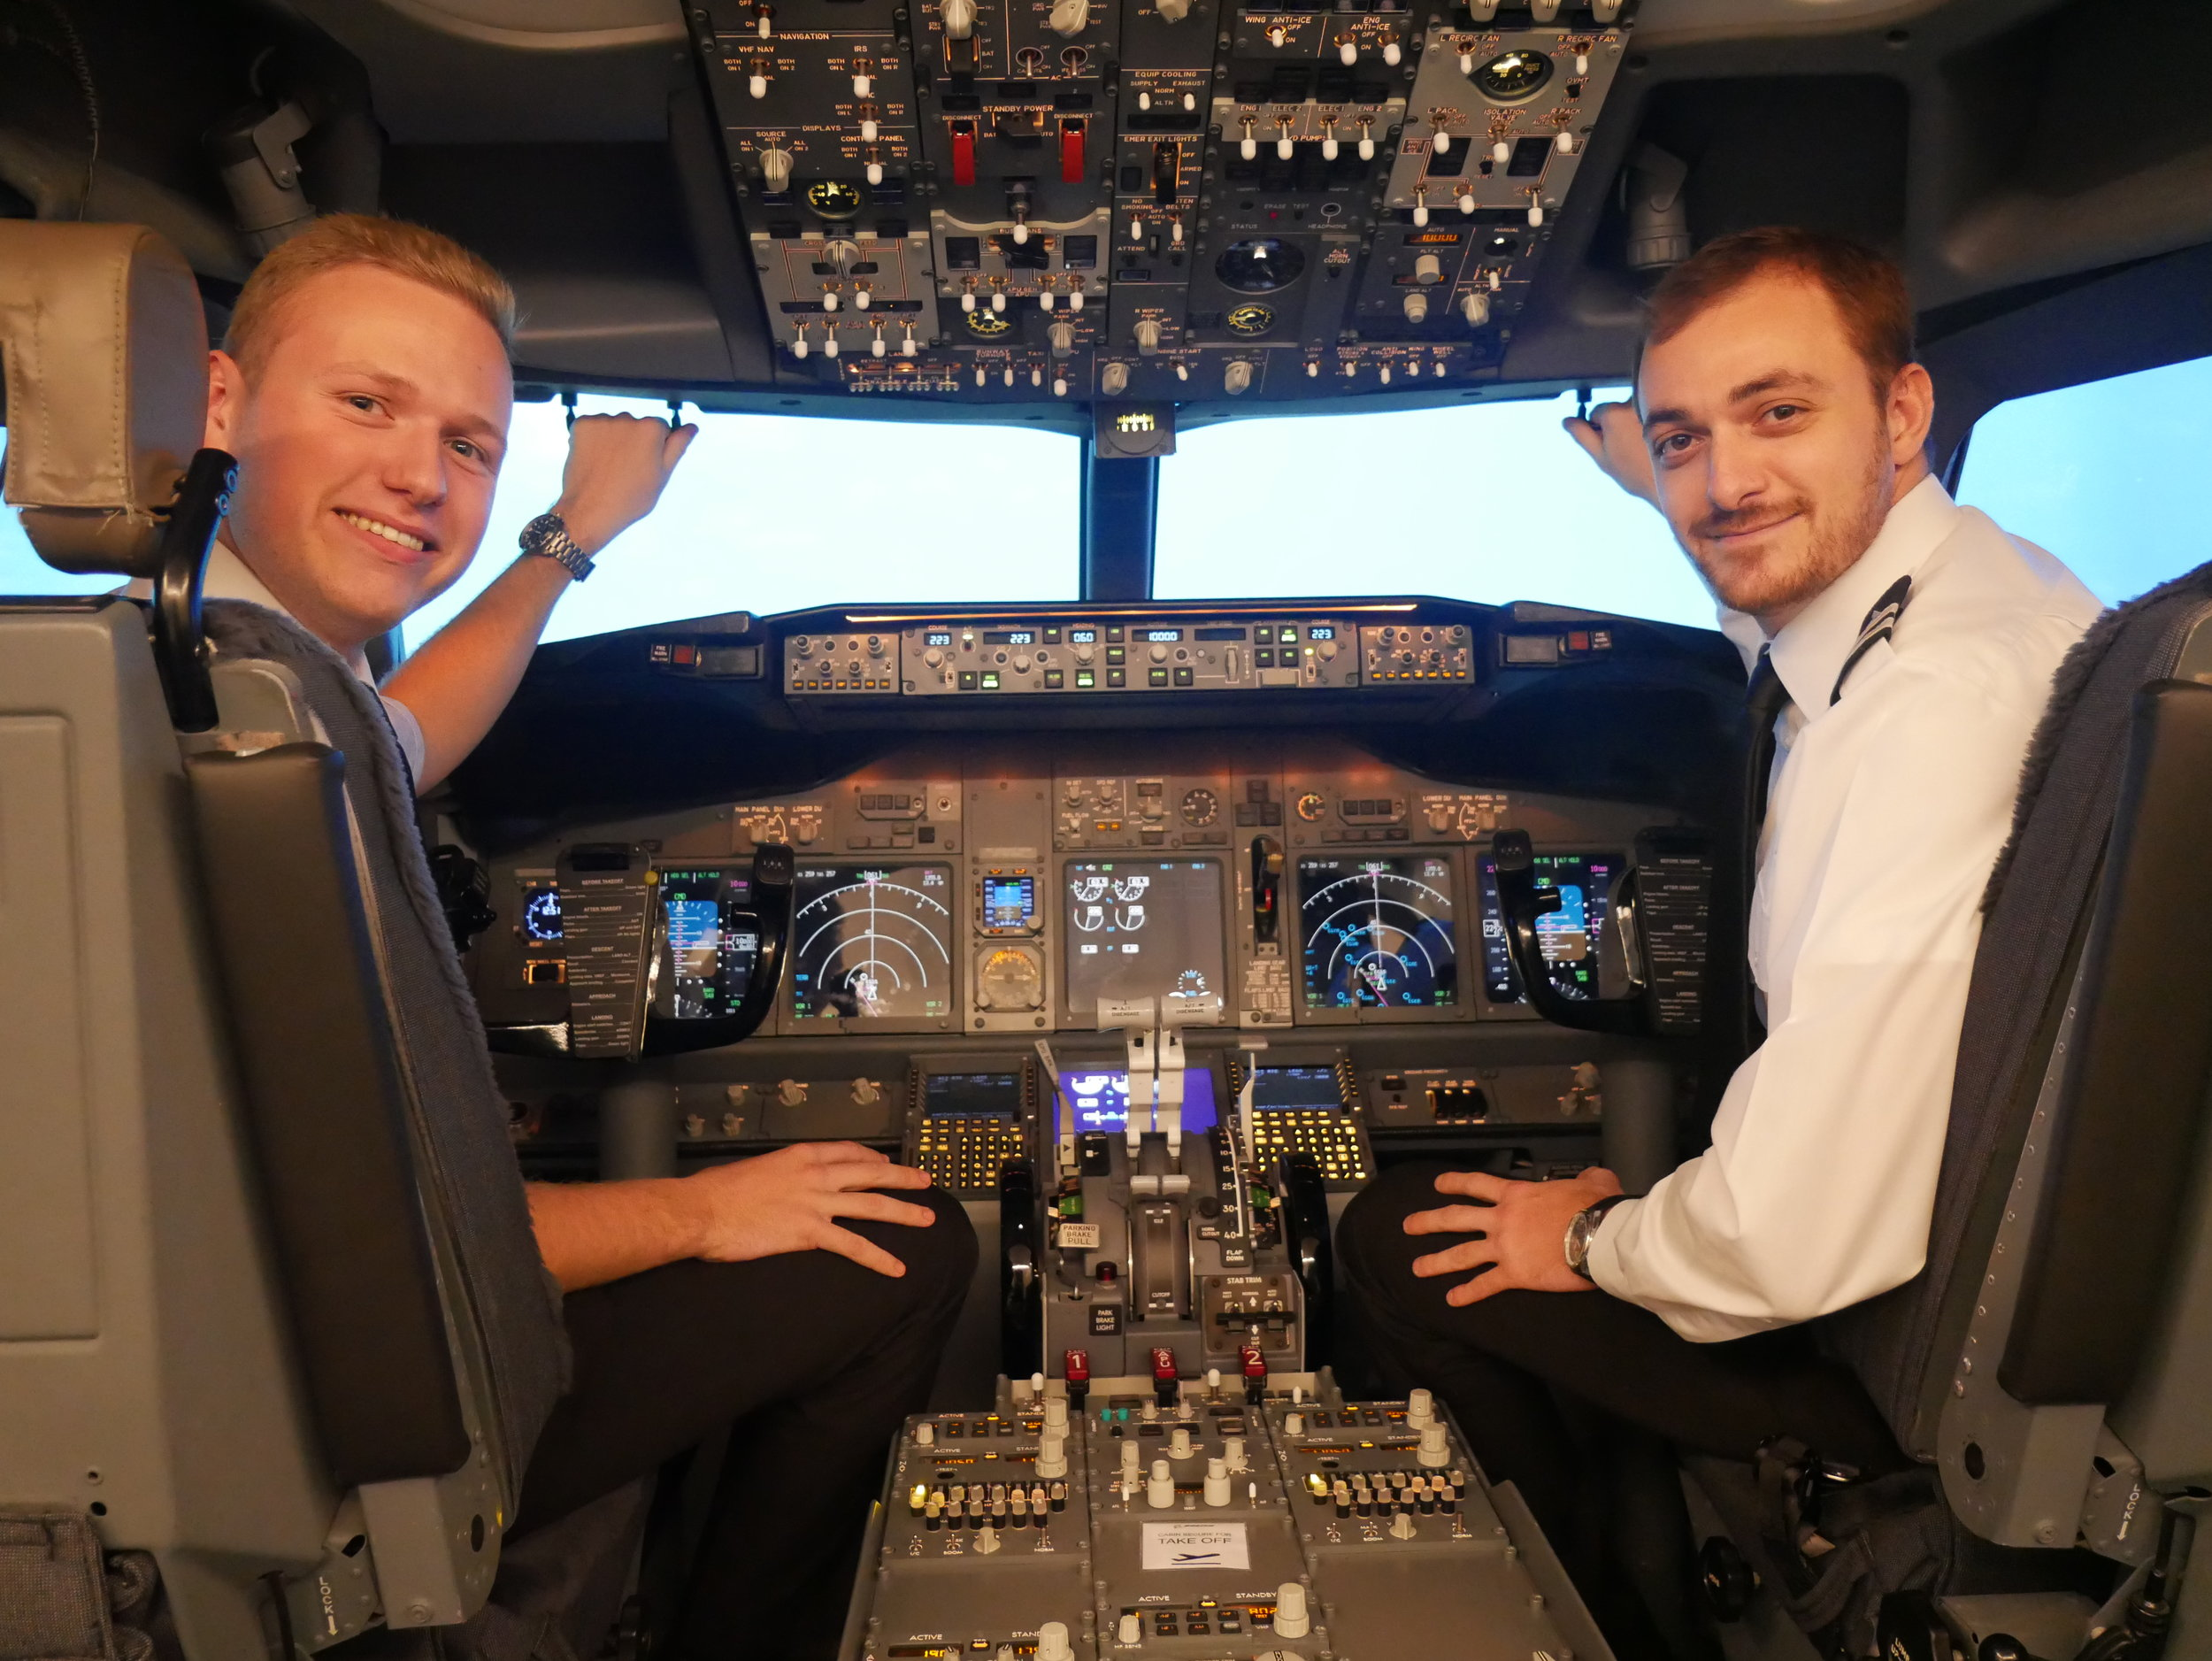 Daniele (right) and his training co-pilot Simon. Since graduating our APS MCC course in 2018 both have furthered their airline careers, with Daniele at Ryanair and Simon at Flybe.